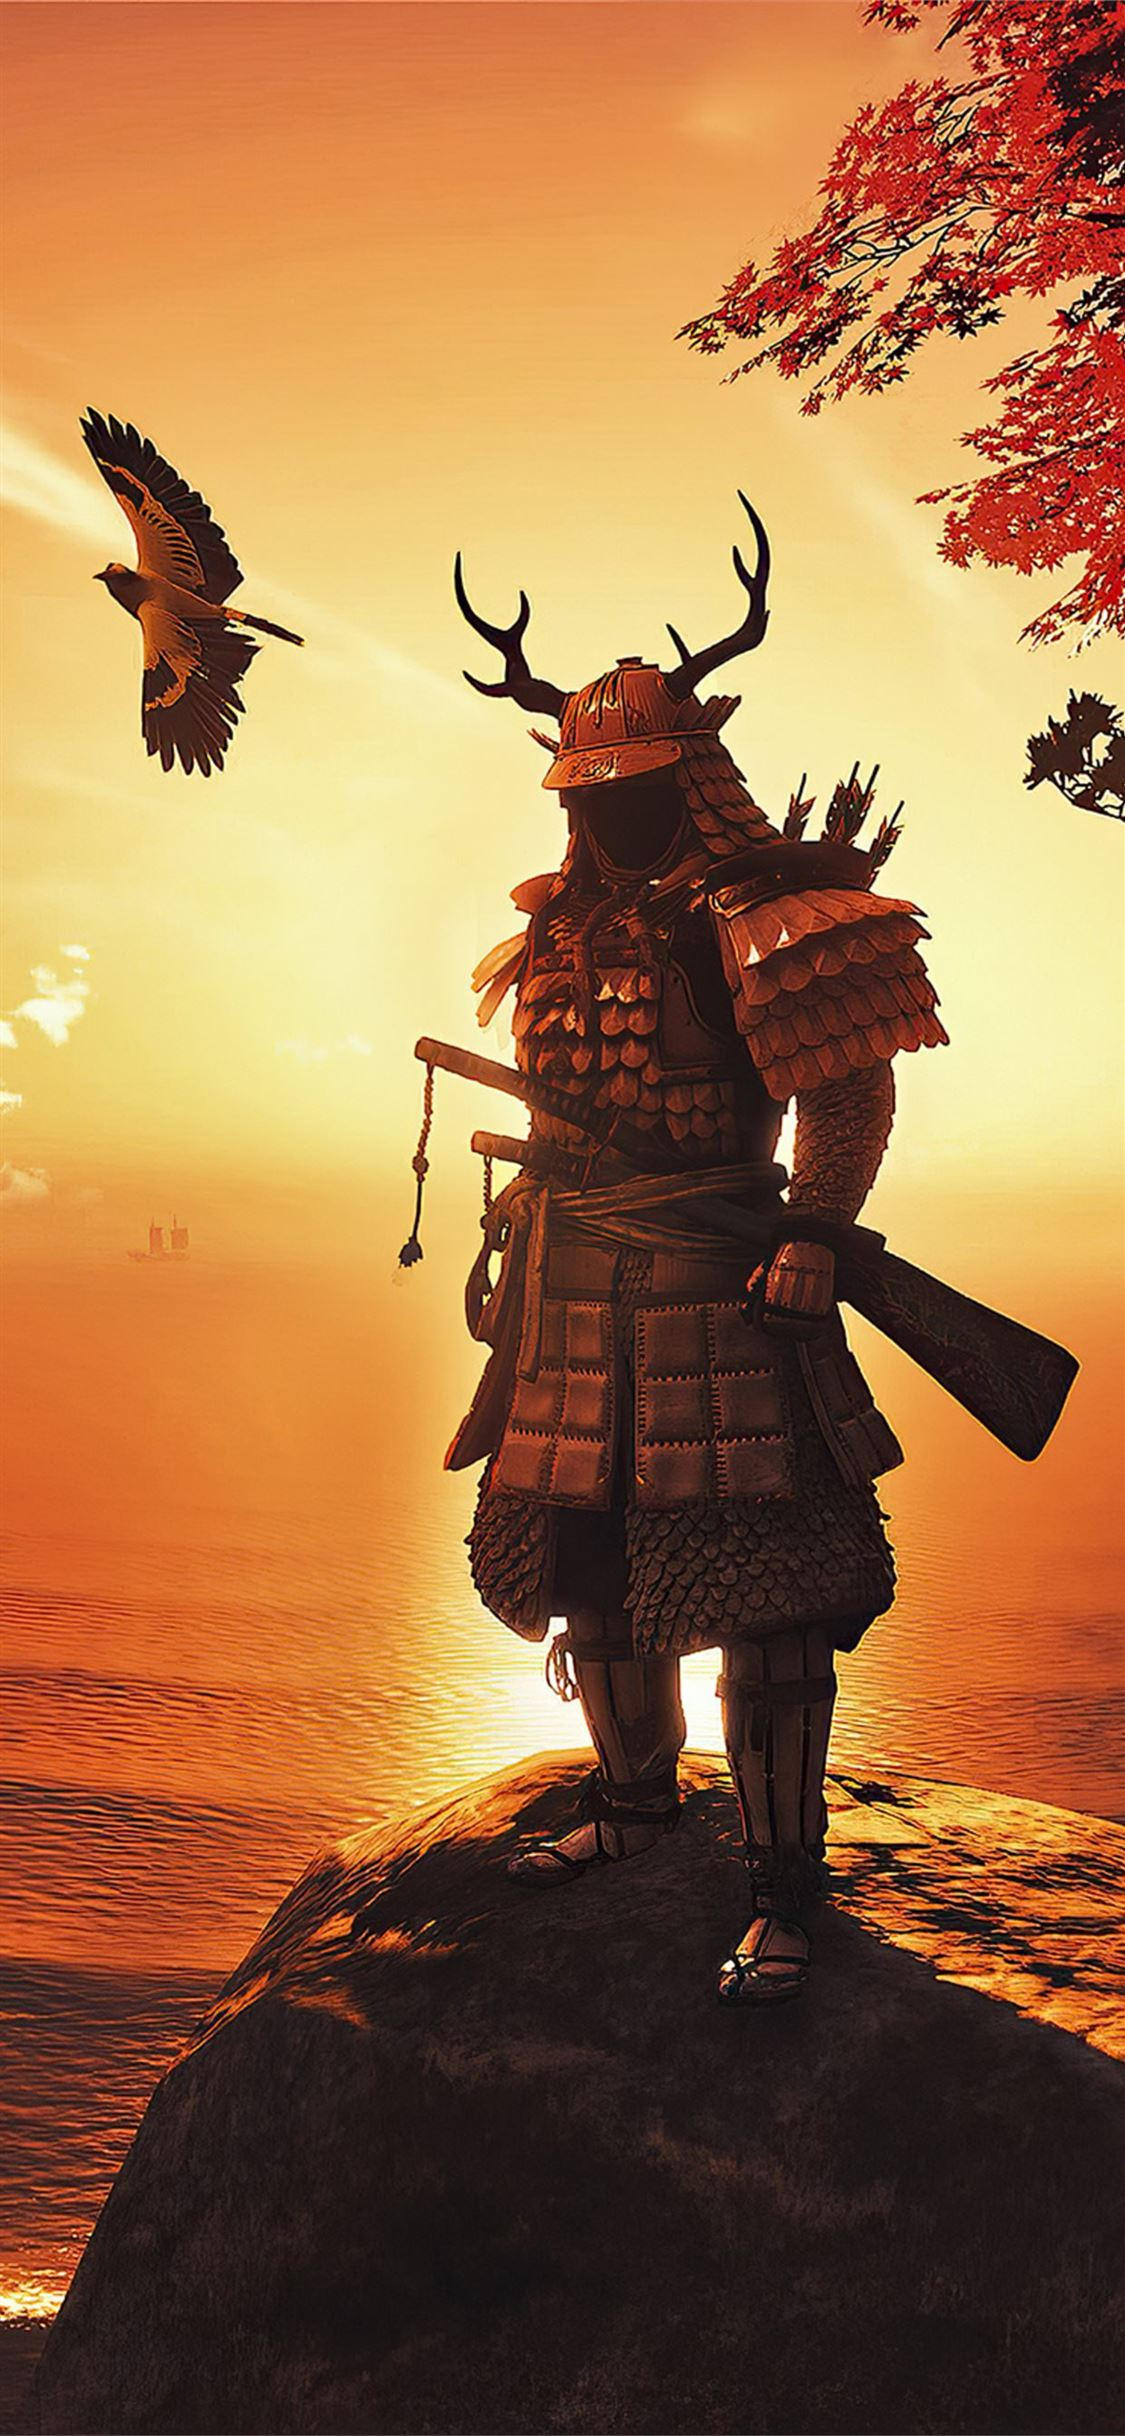 ghost of tsushima fan 4k iPhone X Wallpapers Free Download